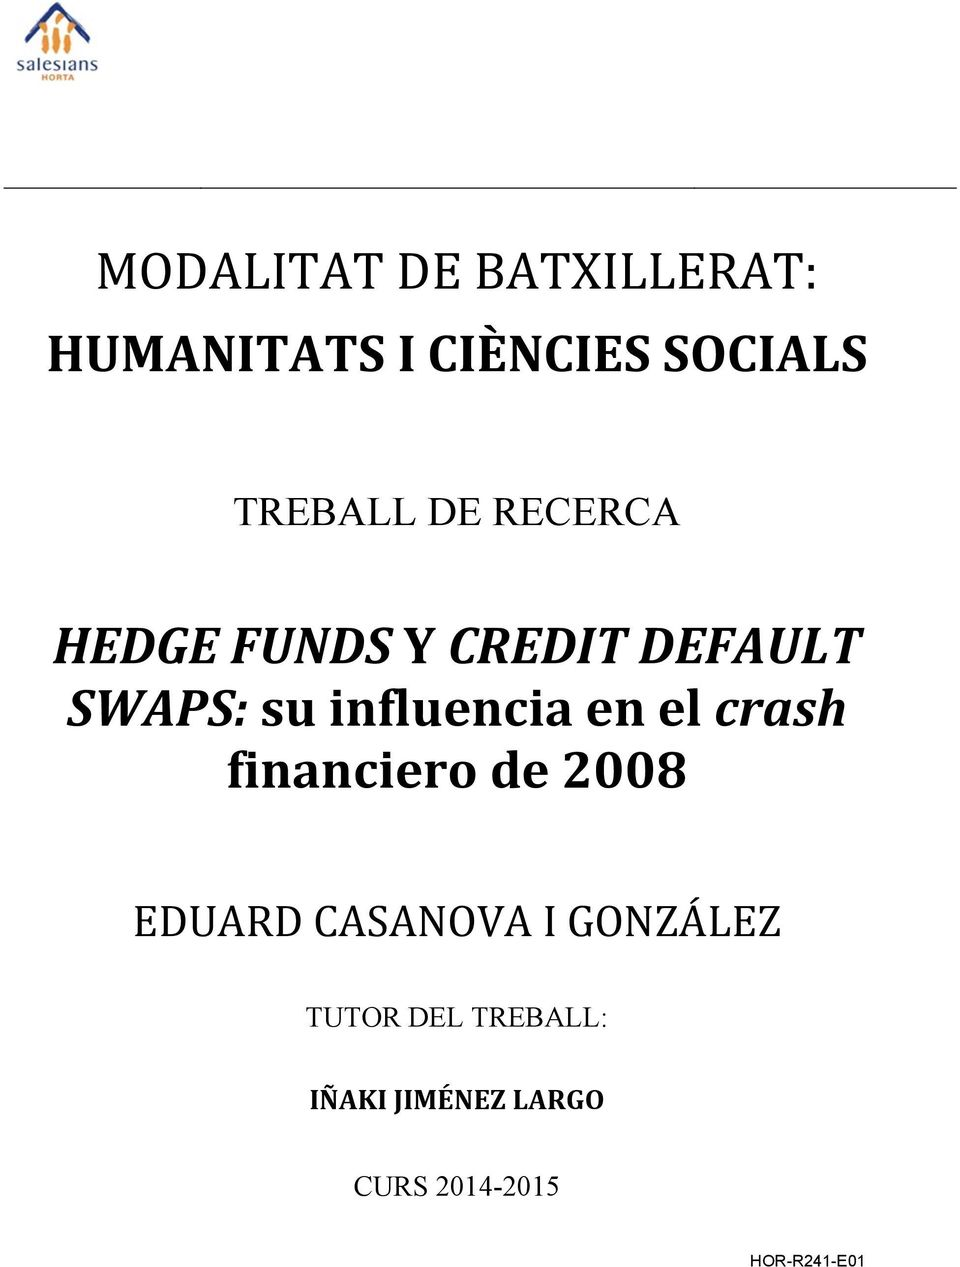 influencia en el crash financiero de 2008 EDUARD CASANOVA I